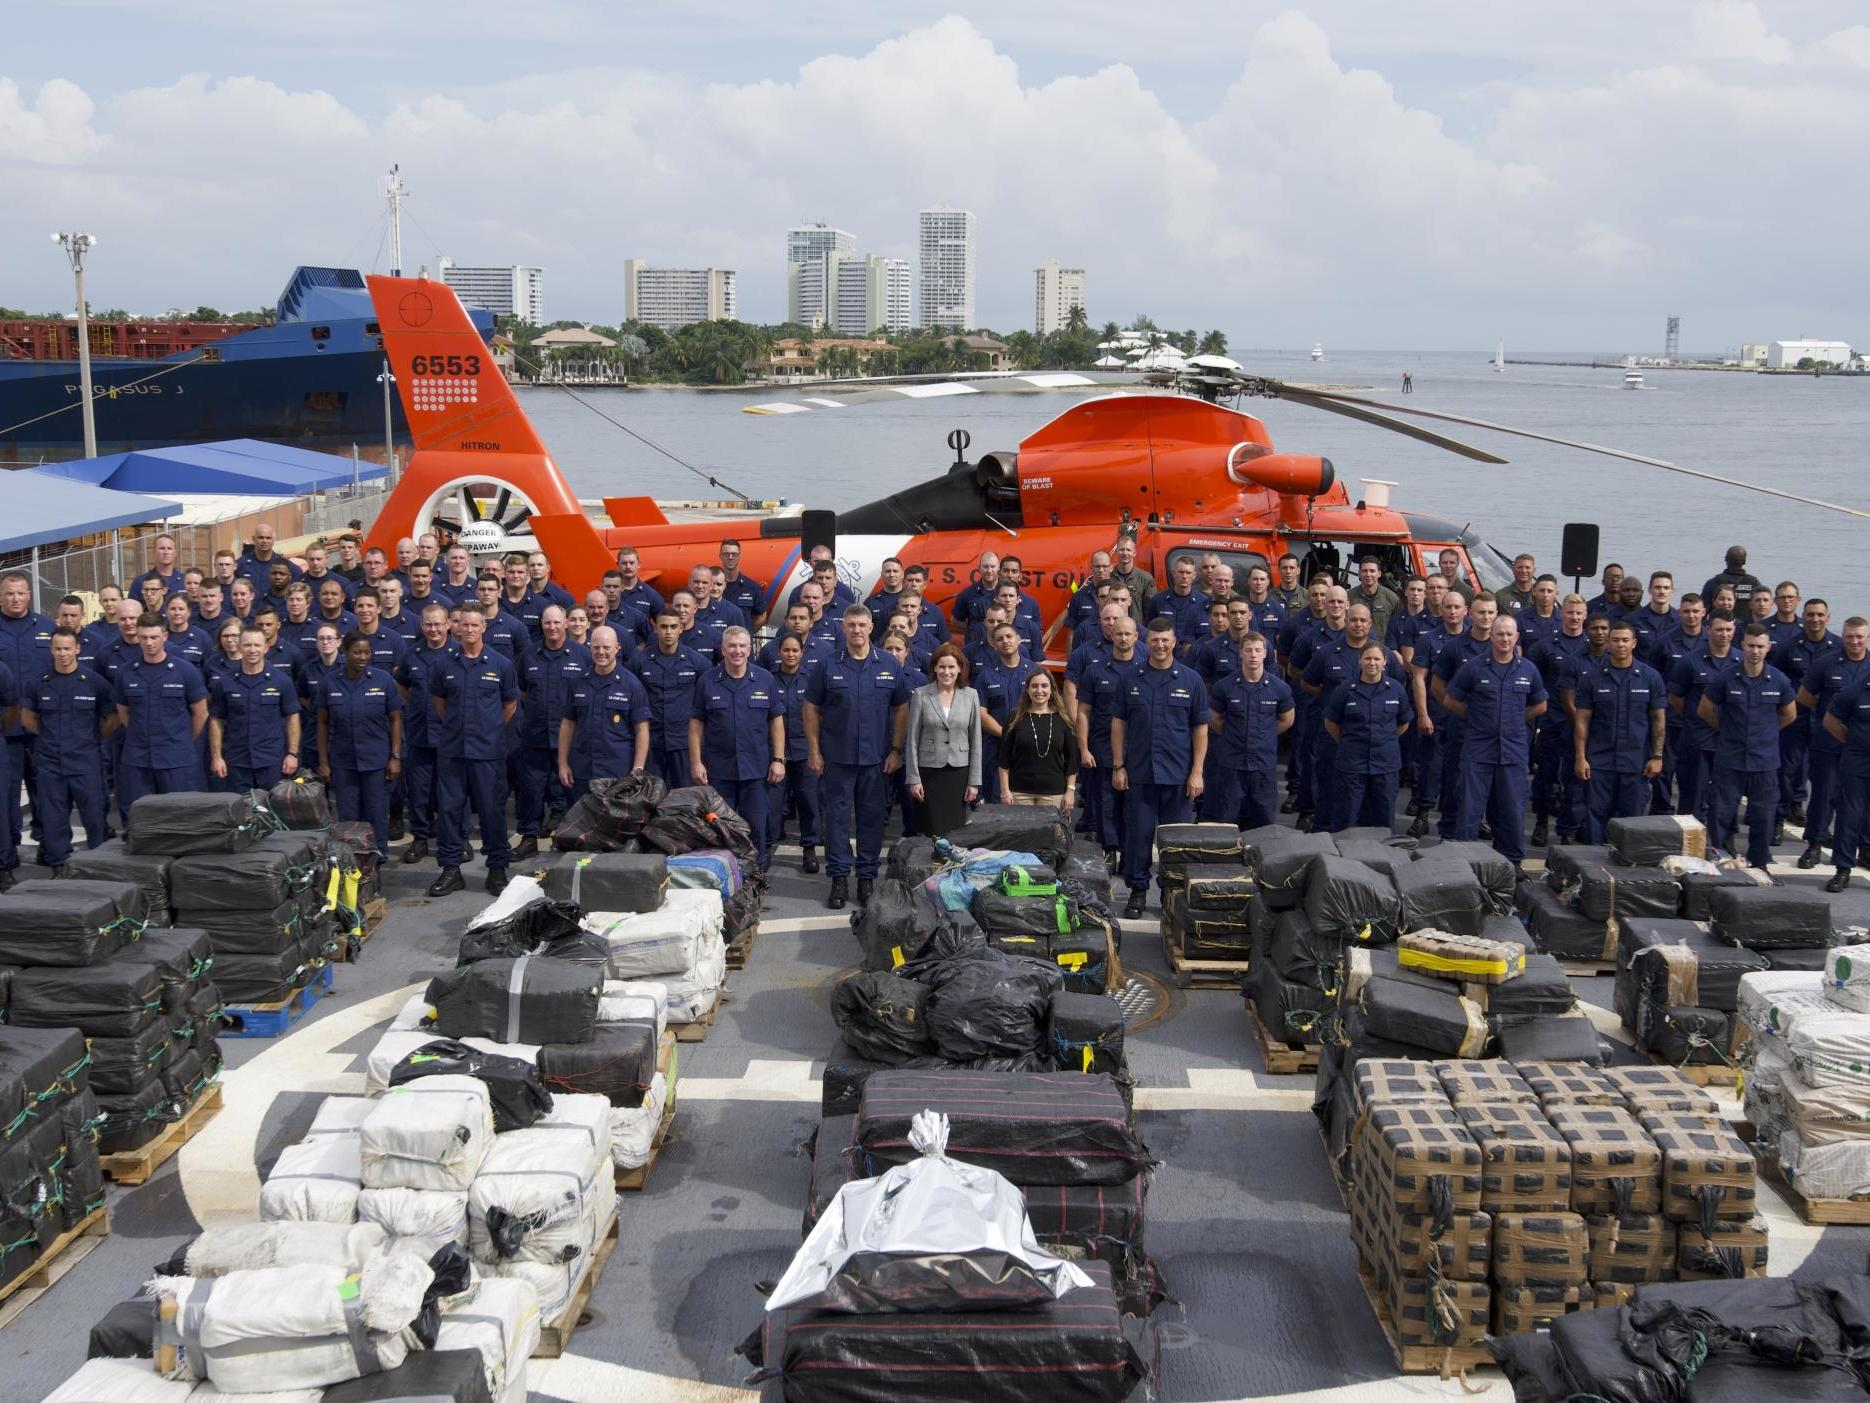 16.7 tonnes of cocaine seized by US Coast Guard in huge drugs bust